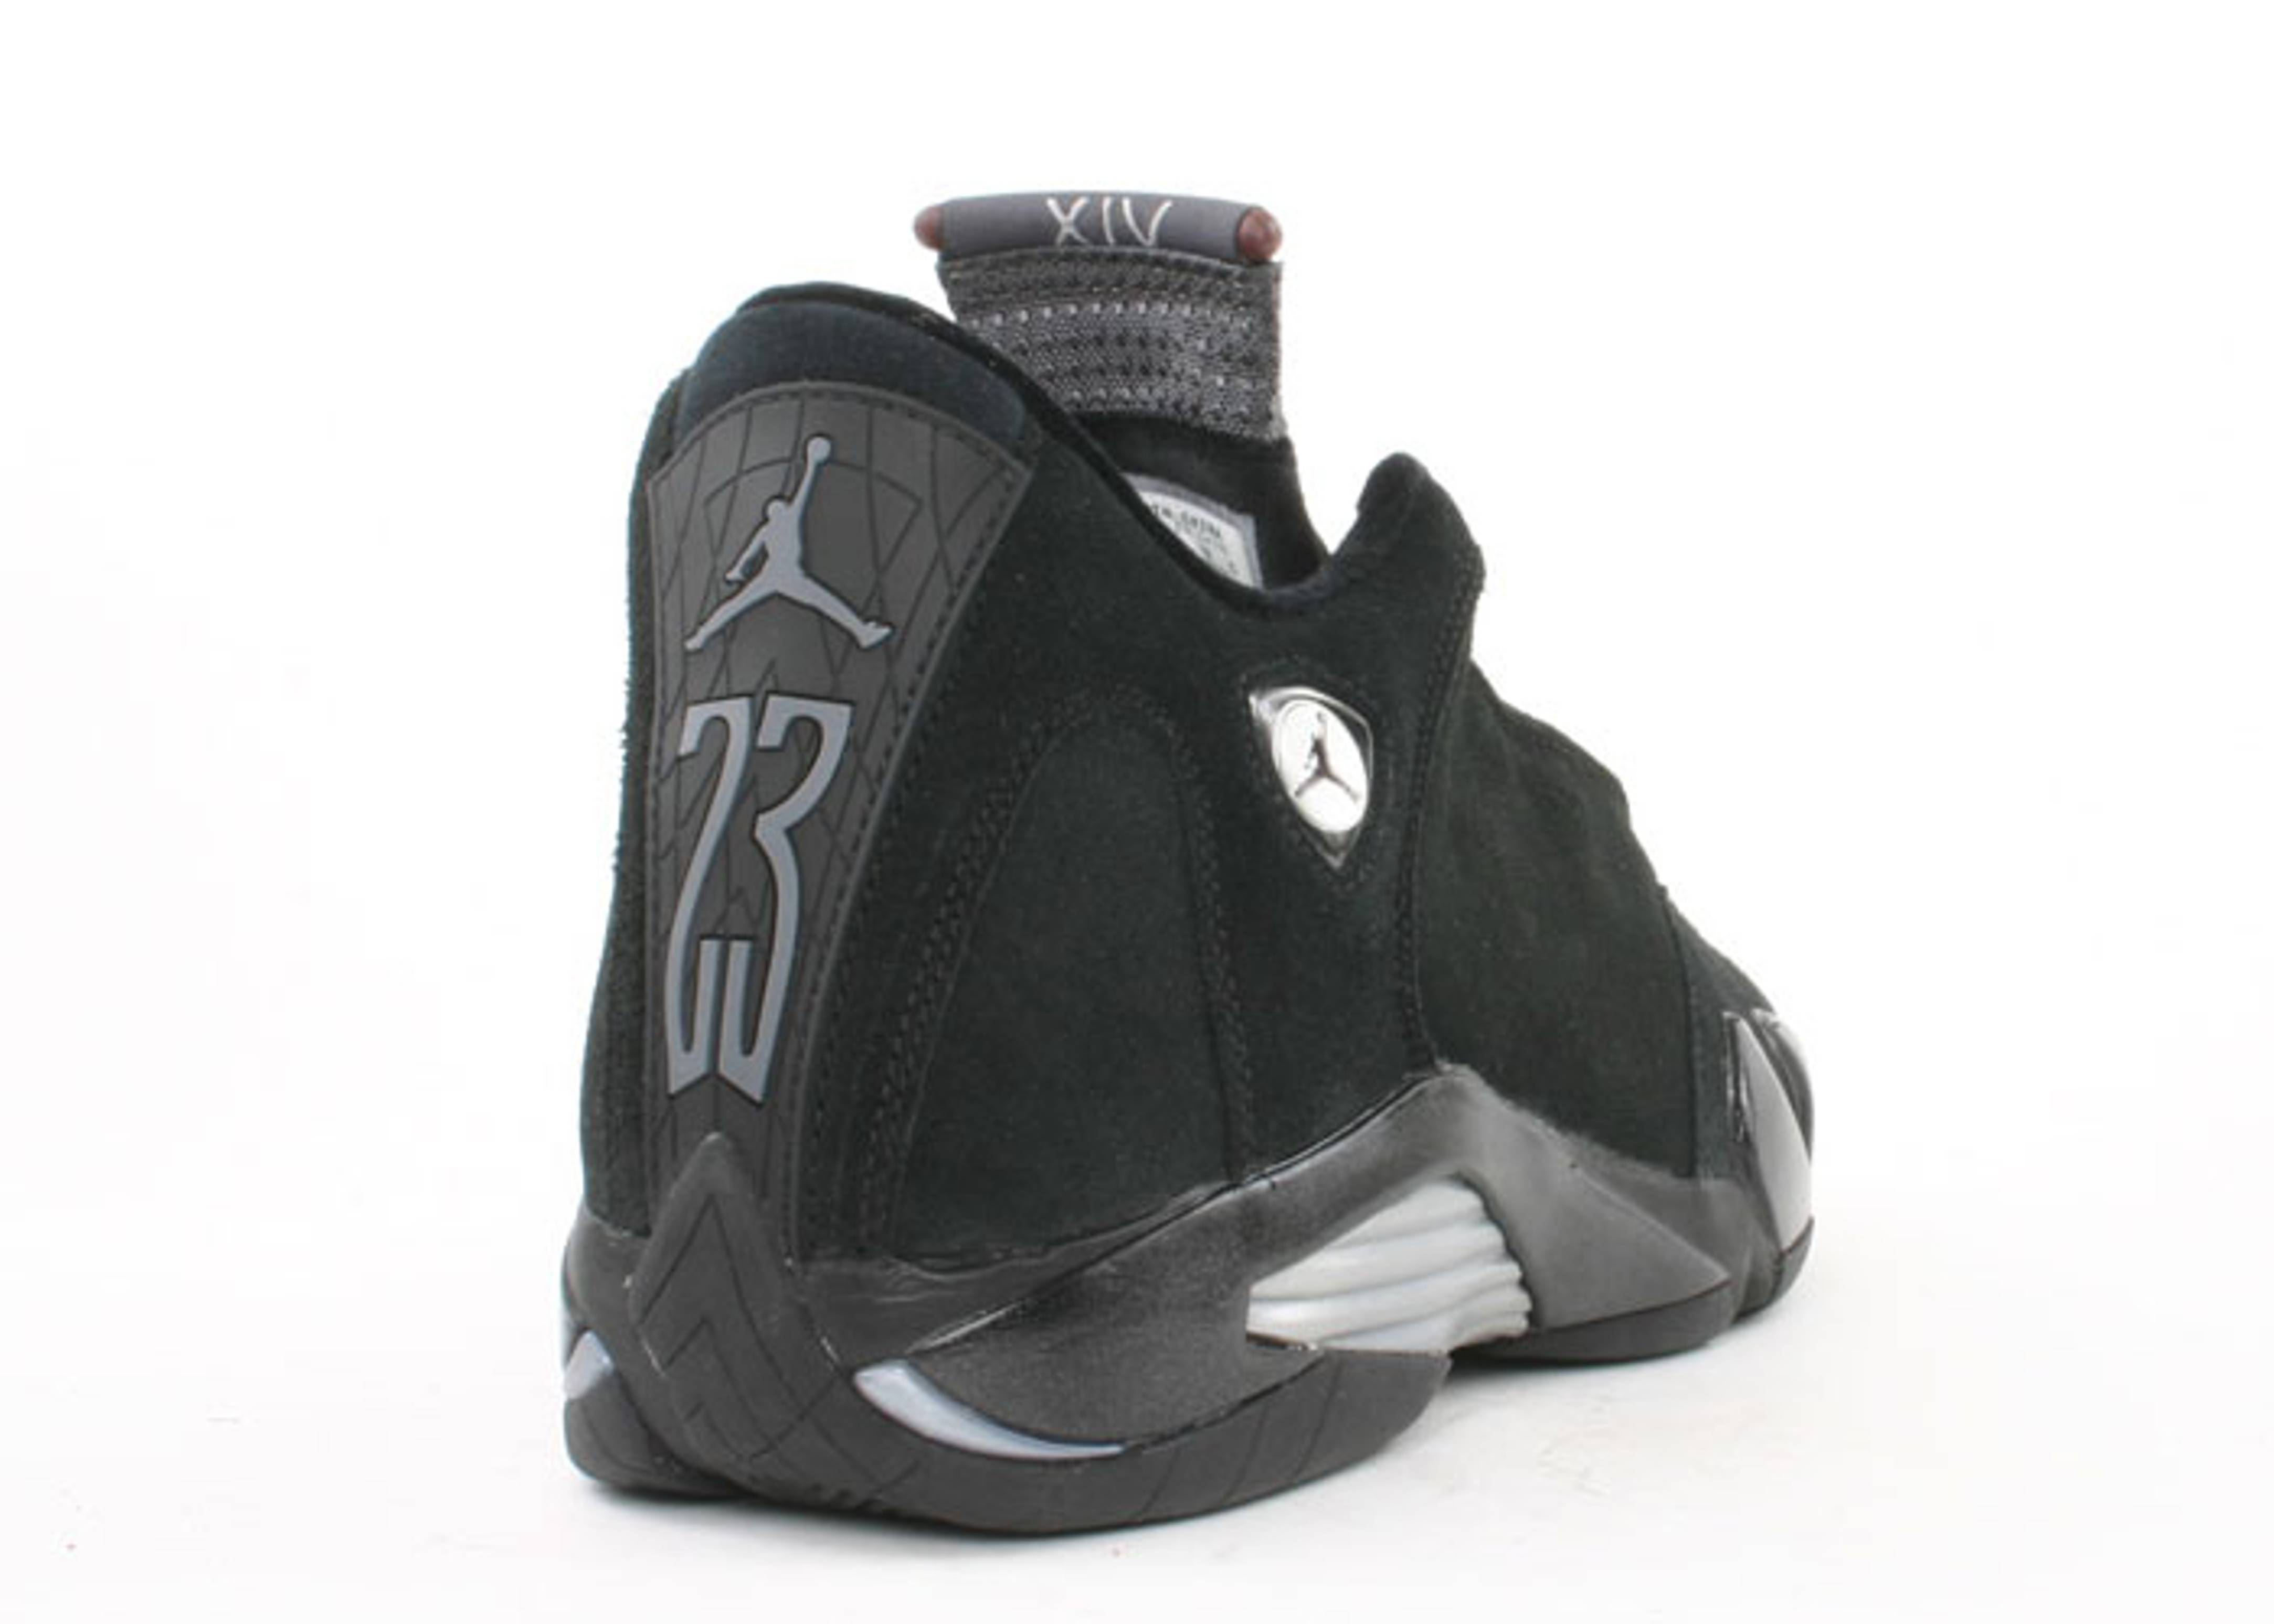 ... air jordan 14 retro; air jordan retro 14 womens silver grey ...